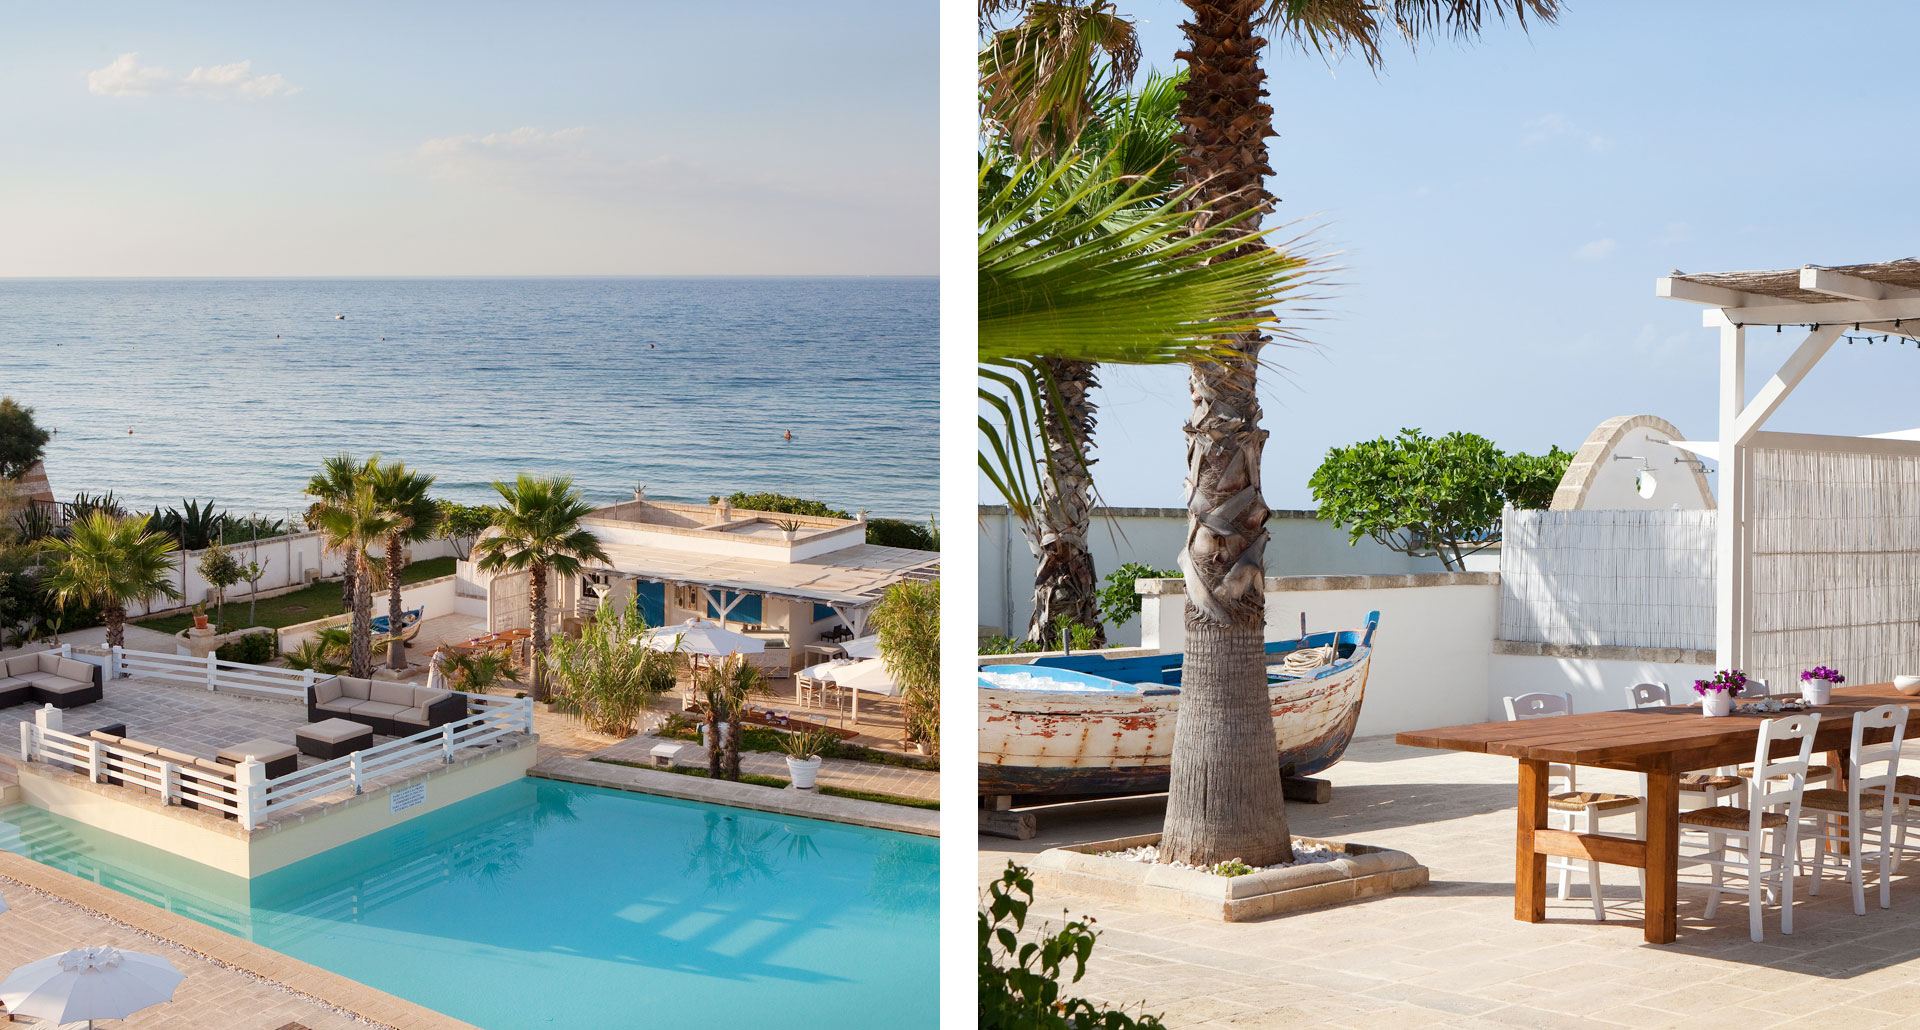 Canne Bianche Lifestyle & Hotel - boutique hotel in Torre Canne di Fasano